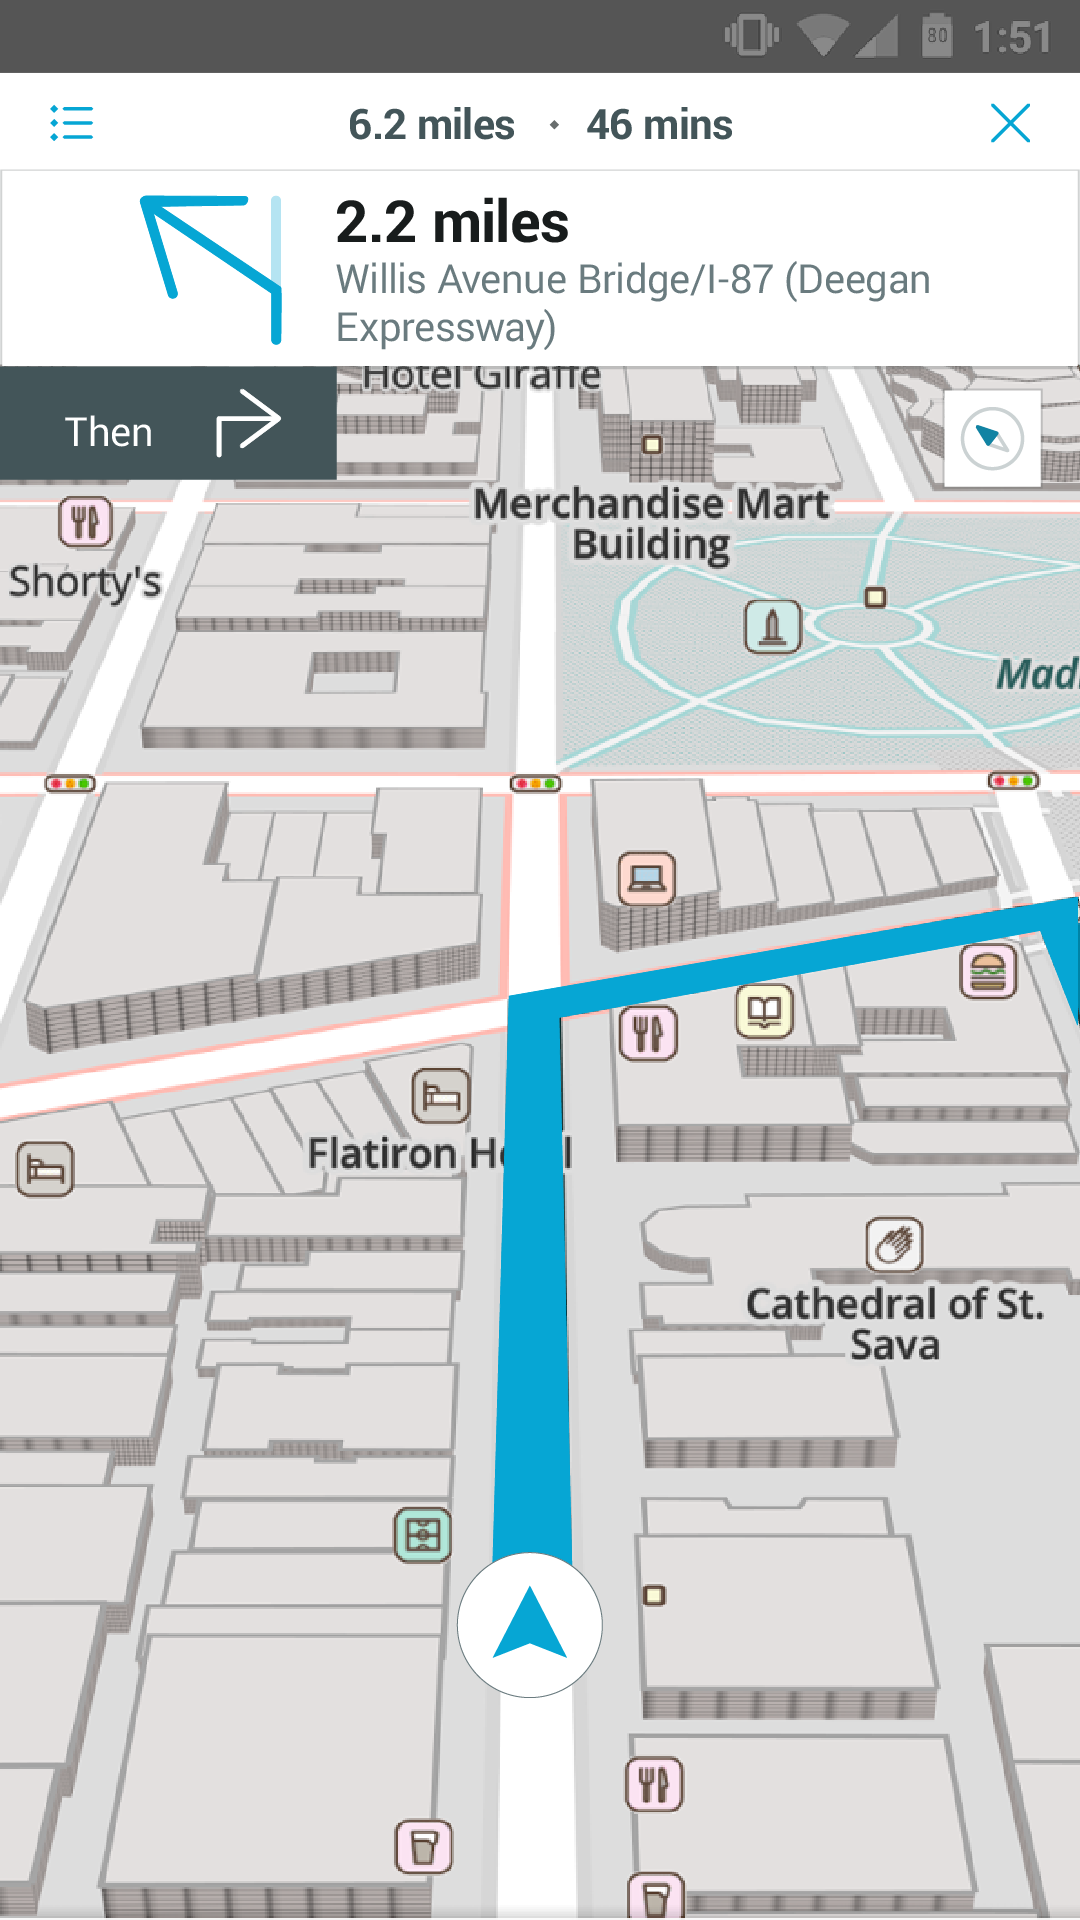 Turn-by-turn navigation - map view